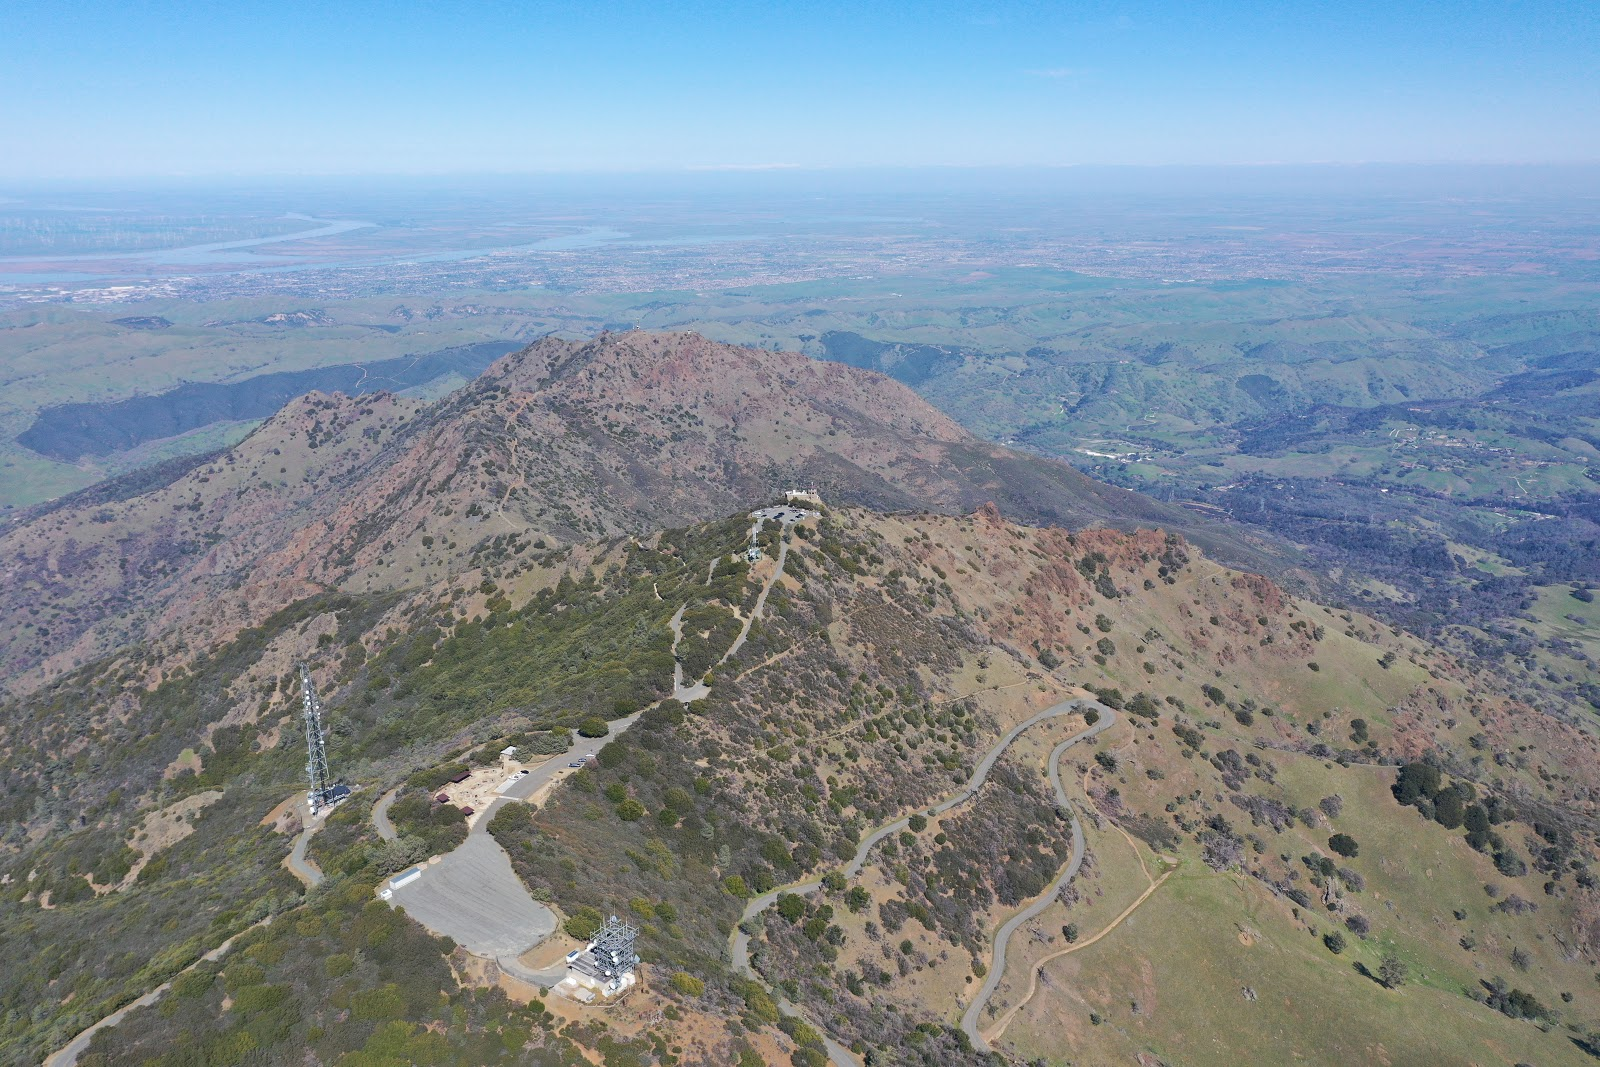 Cycling and riding by bike Mt. Diablo - aerial drone photo of Summit Road, visitor center, beacon and observation deck